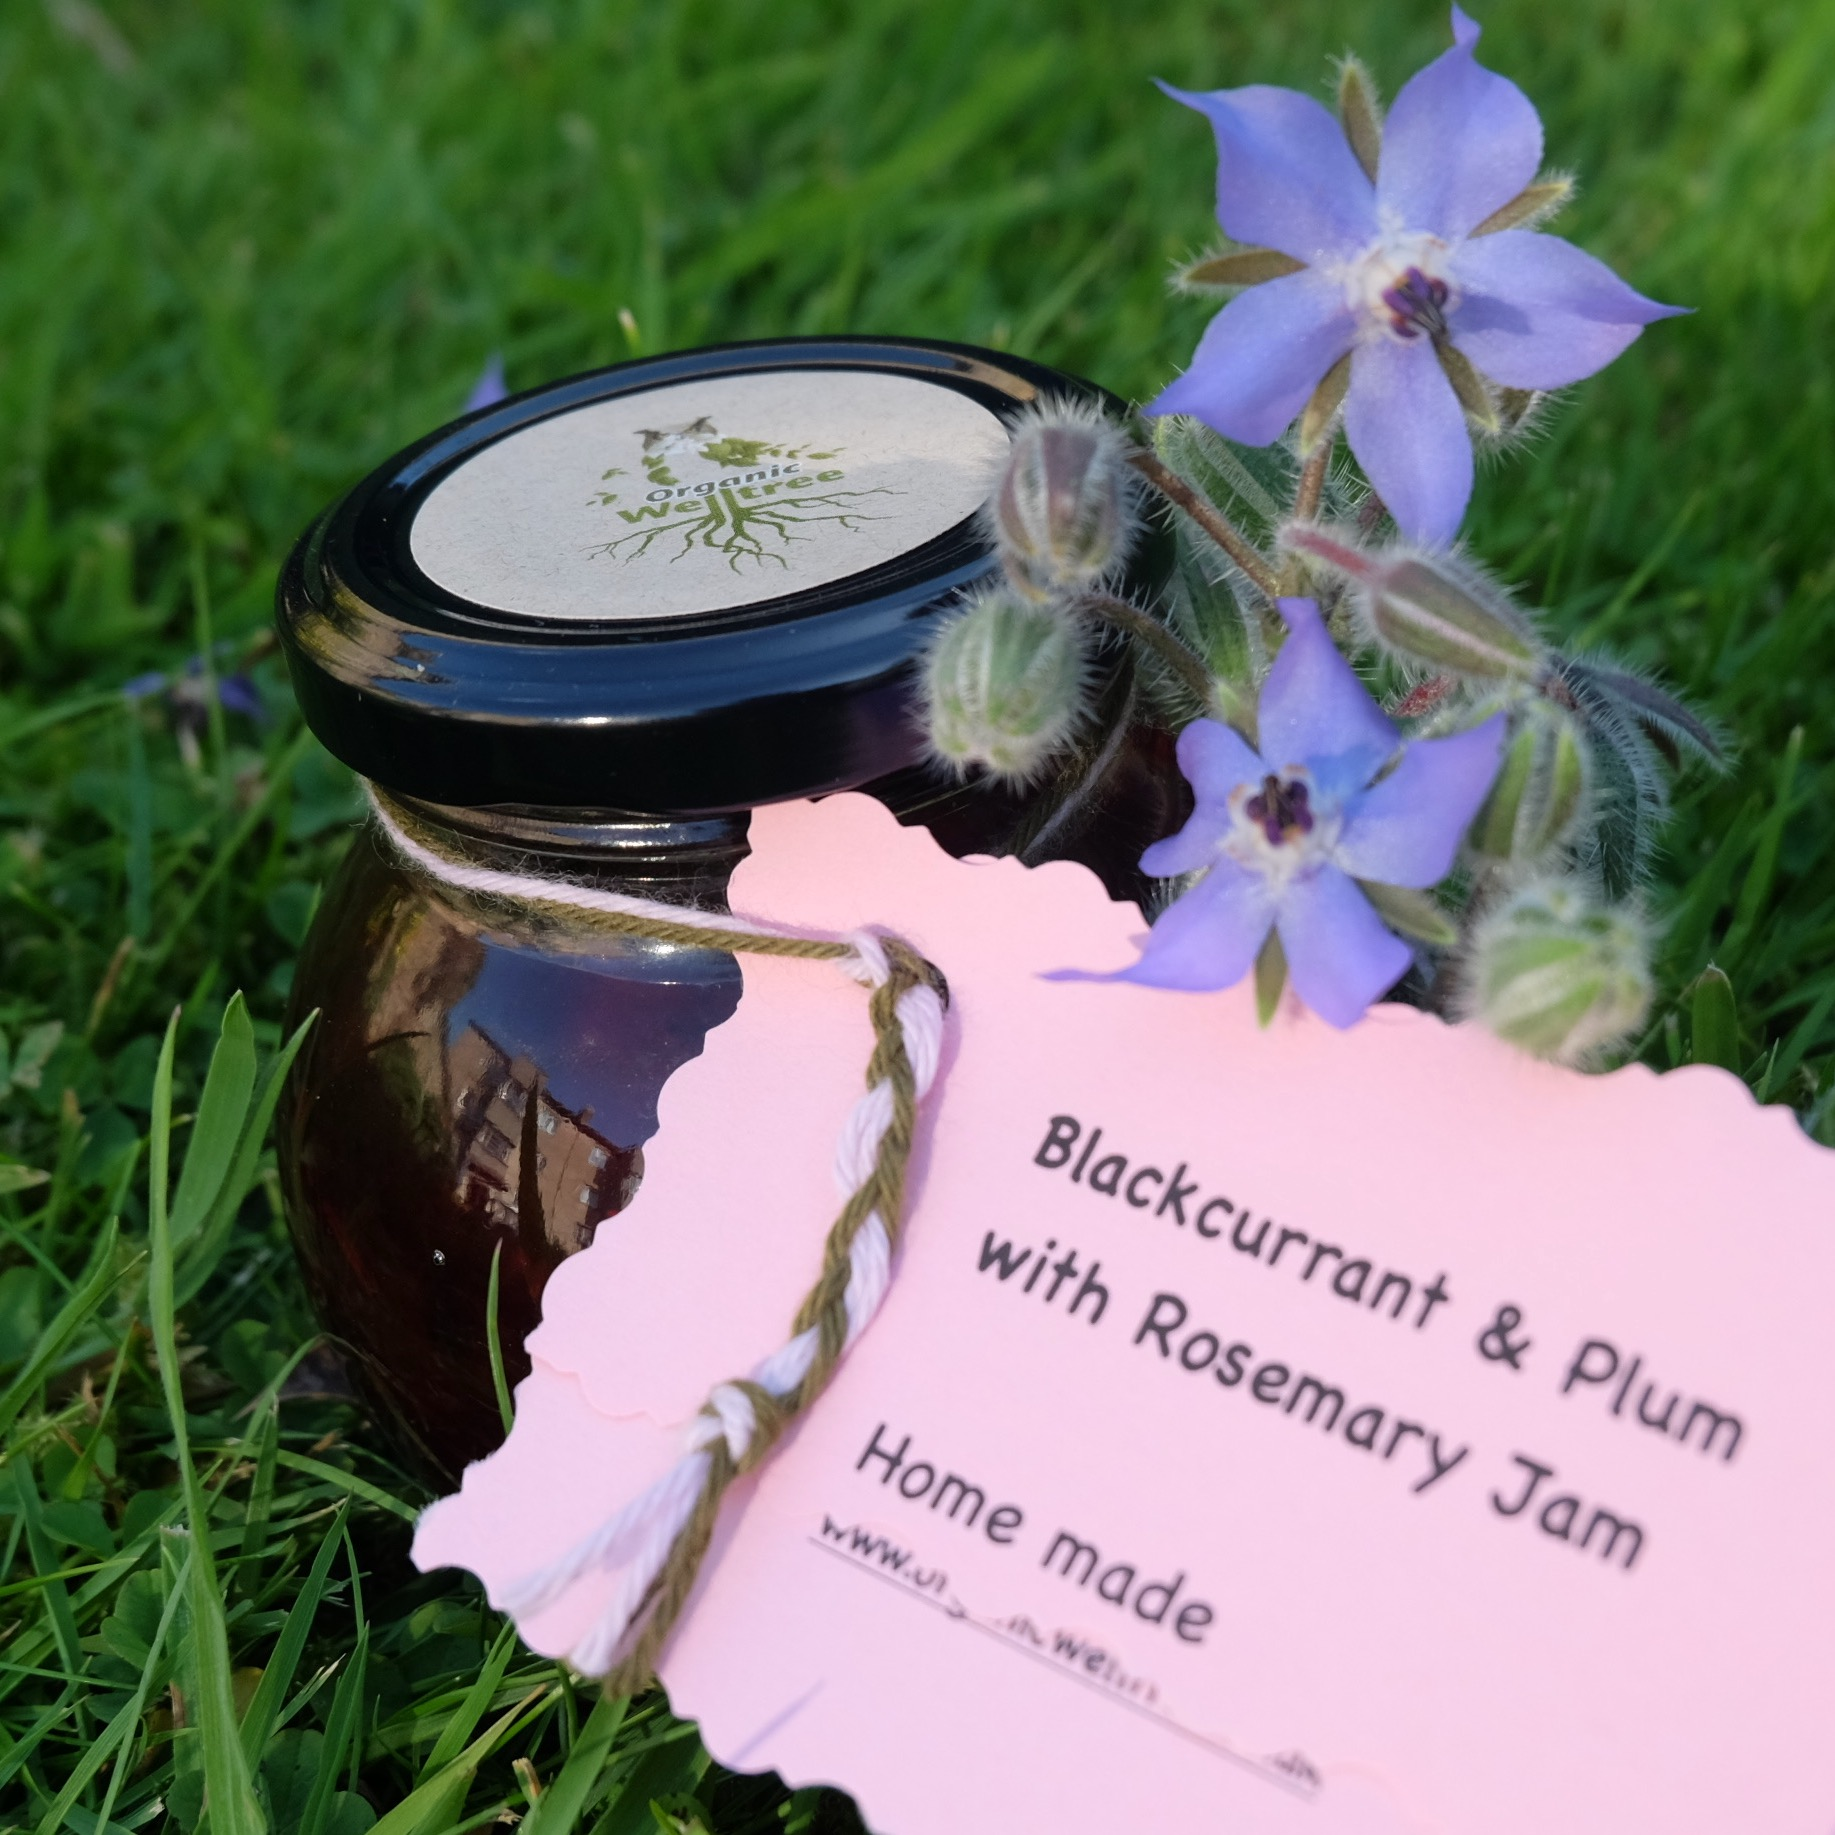 Blackcurrant & Plum with Rosemary (200g)